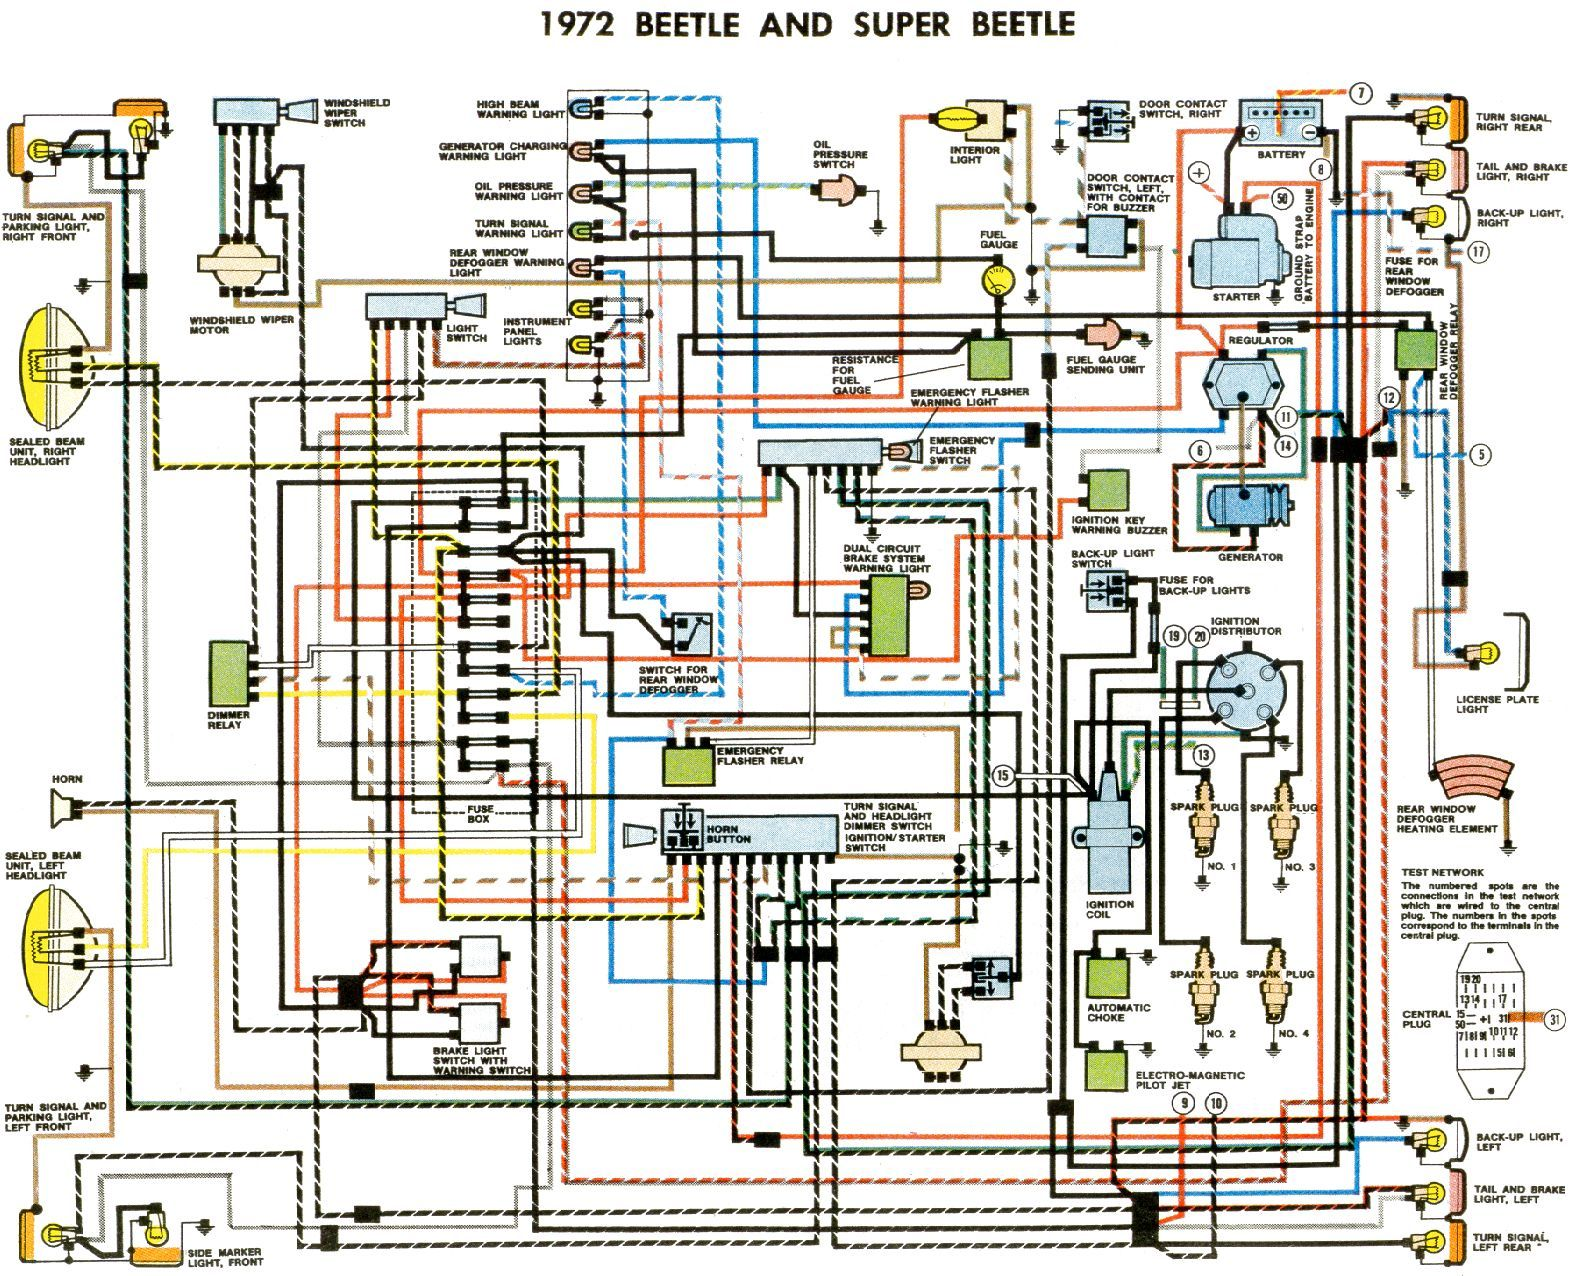 48817ac6ffbdd3287fe627e7db60a9d1 72 wiring diagram jpg; 1582 x 1276 (@46%) vw pinterest 1971 vw super beetle wiring diagram at beritabola.co